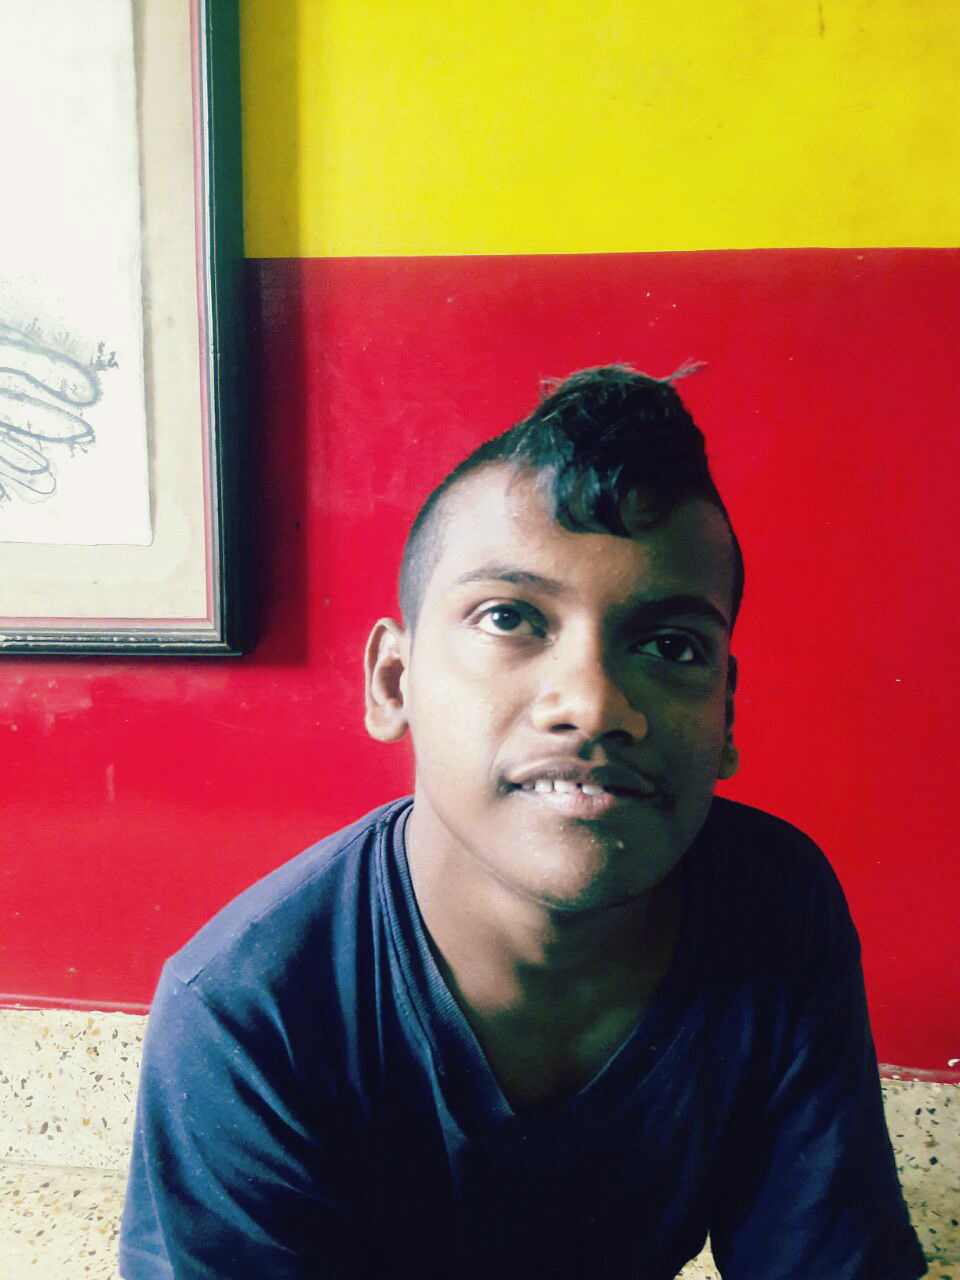 shuktara home for young people with disabilities - 2017 January - Subhash at home